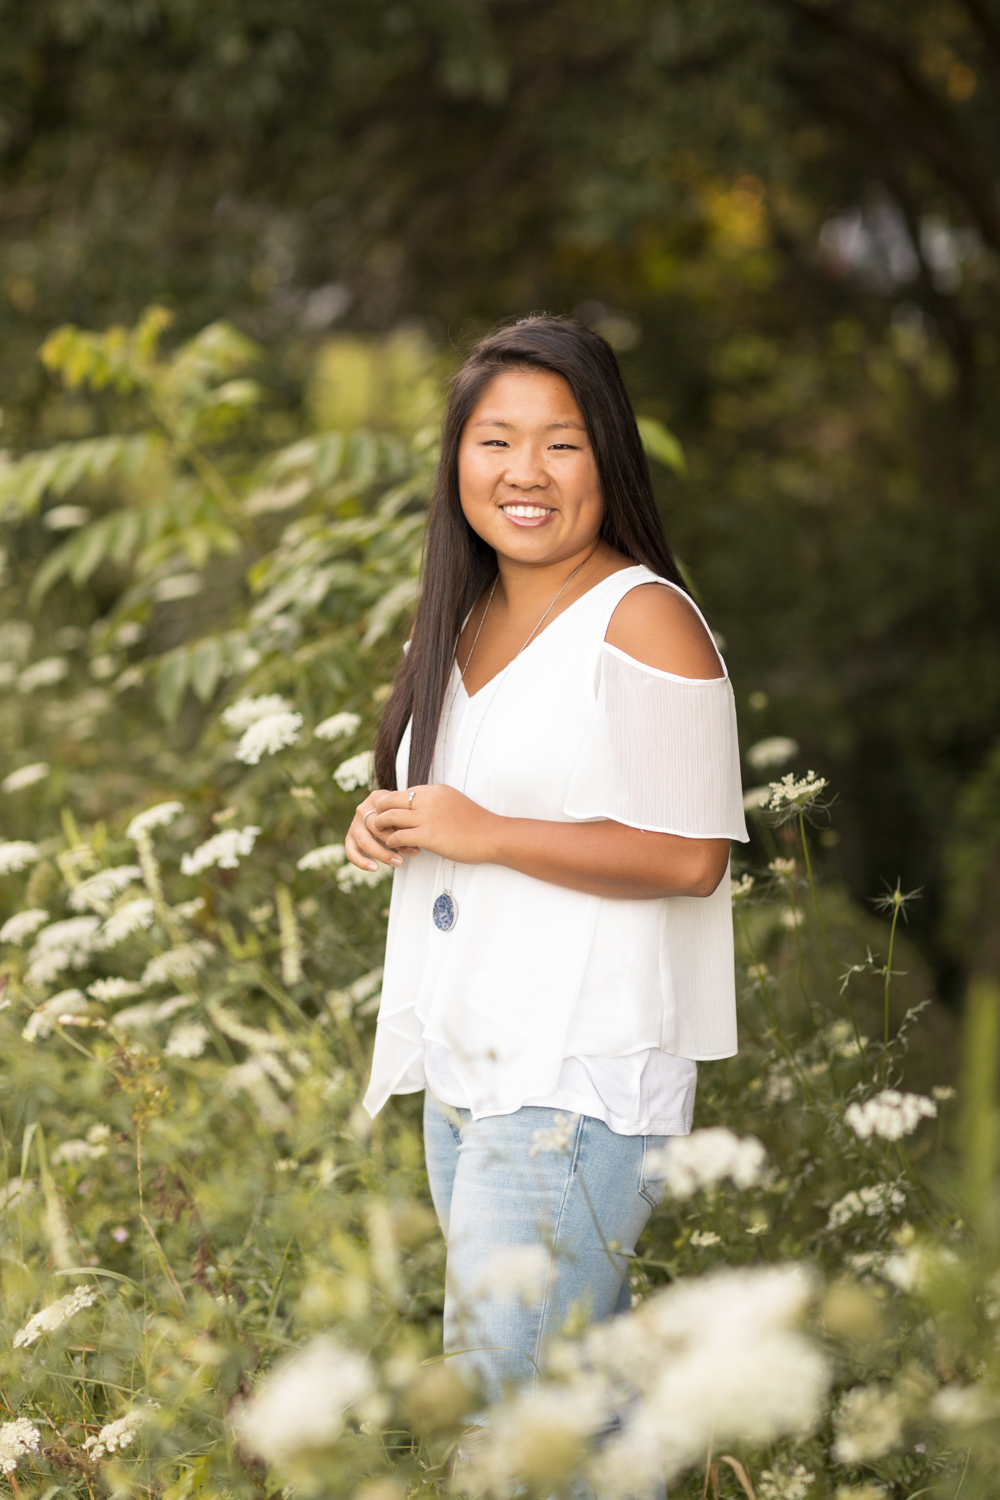 jill_hogan_senior_photography (2 of 16).jpg